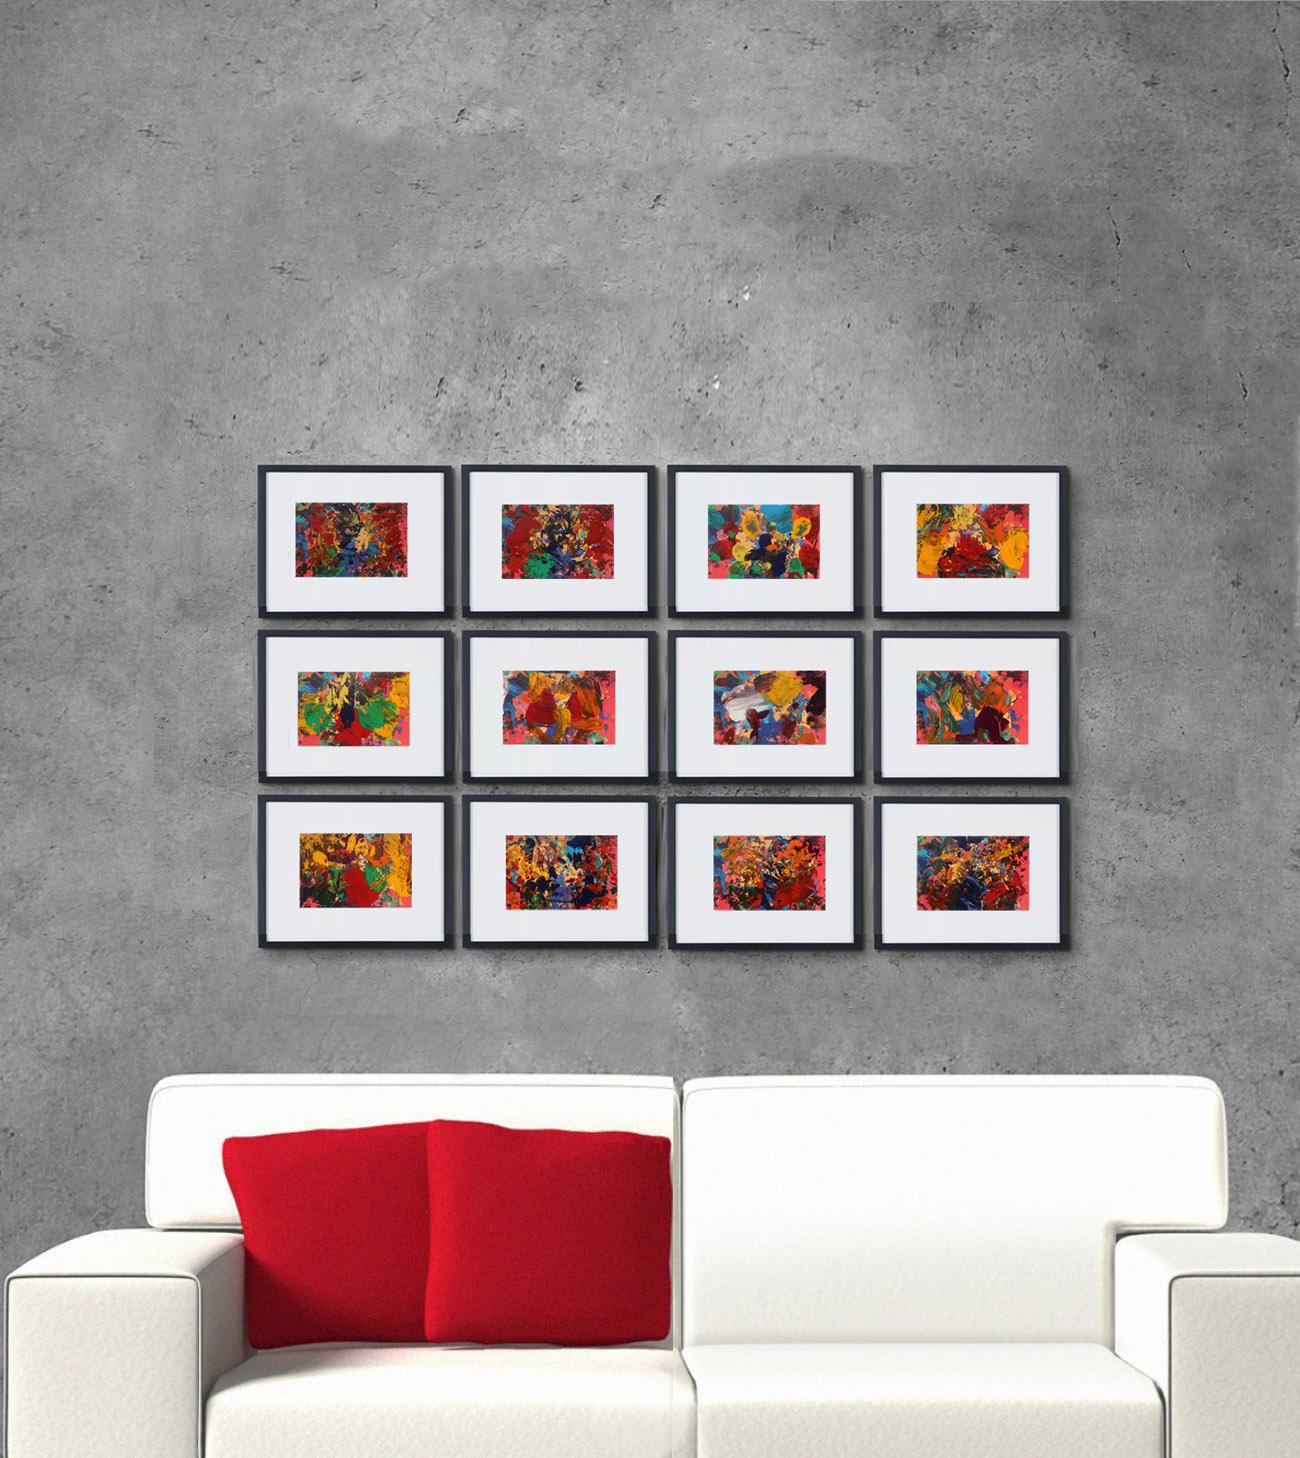 Set of 12 framed abstract paintings Vintage Action Paintings Colorful Hallwalls